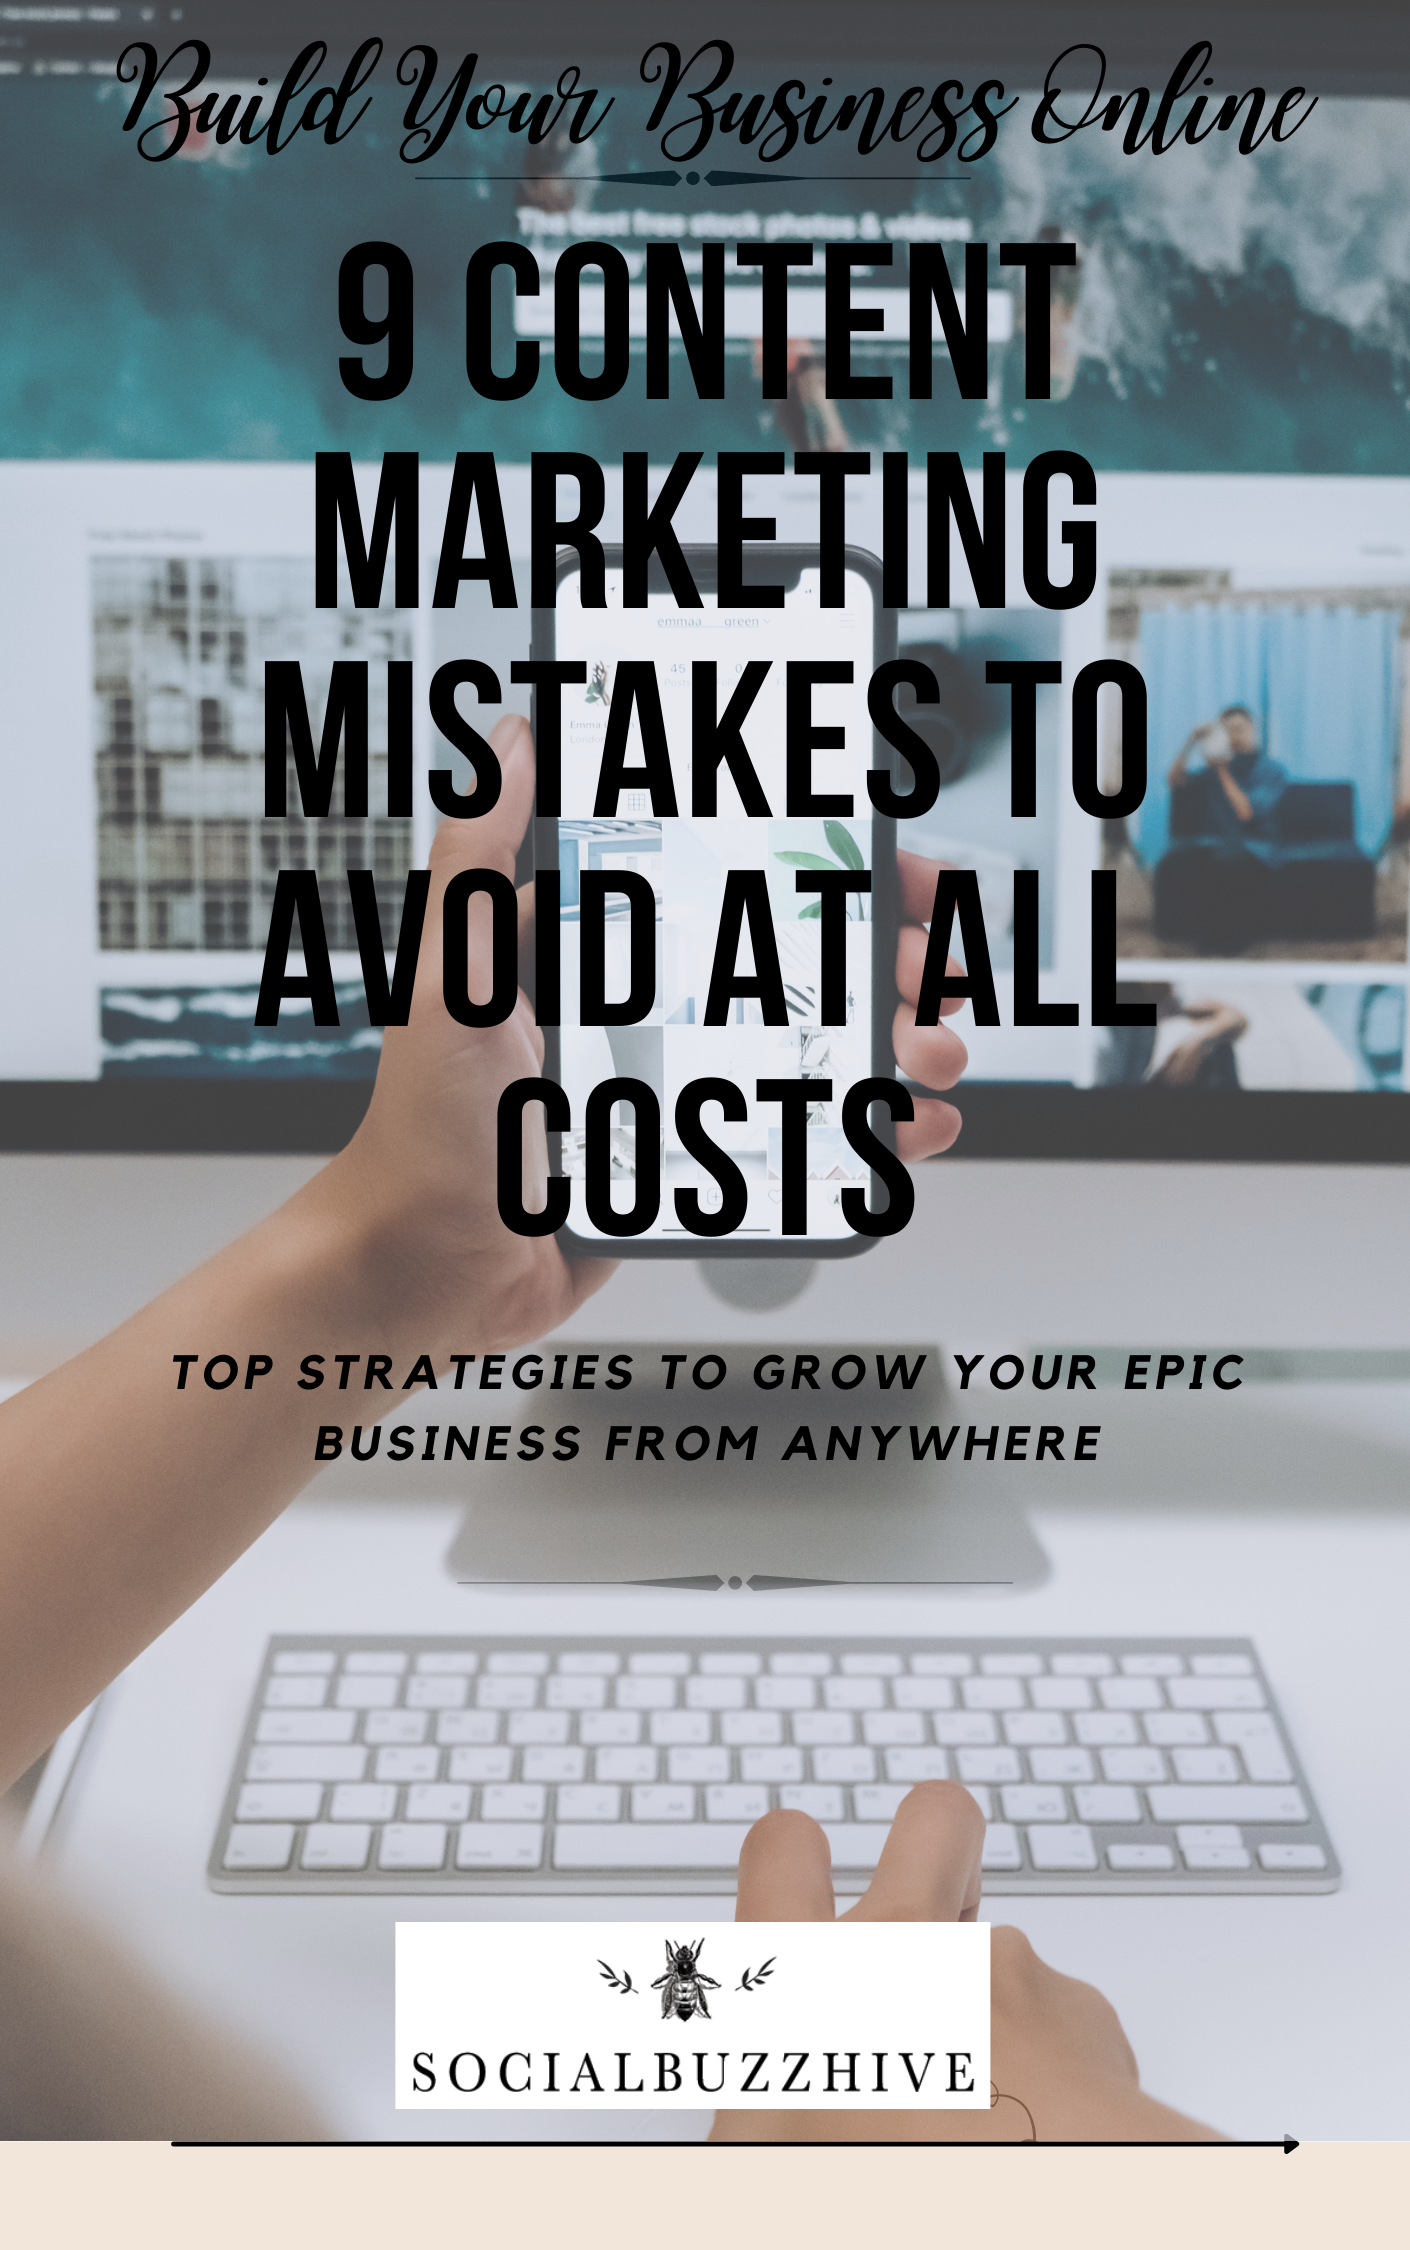 9 content marketing mistakes to avoid at all costs